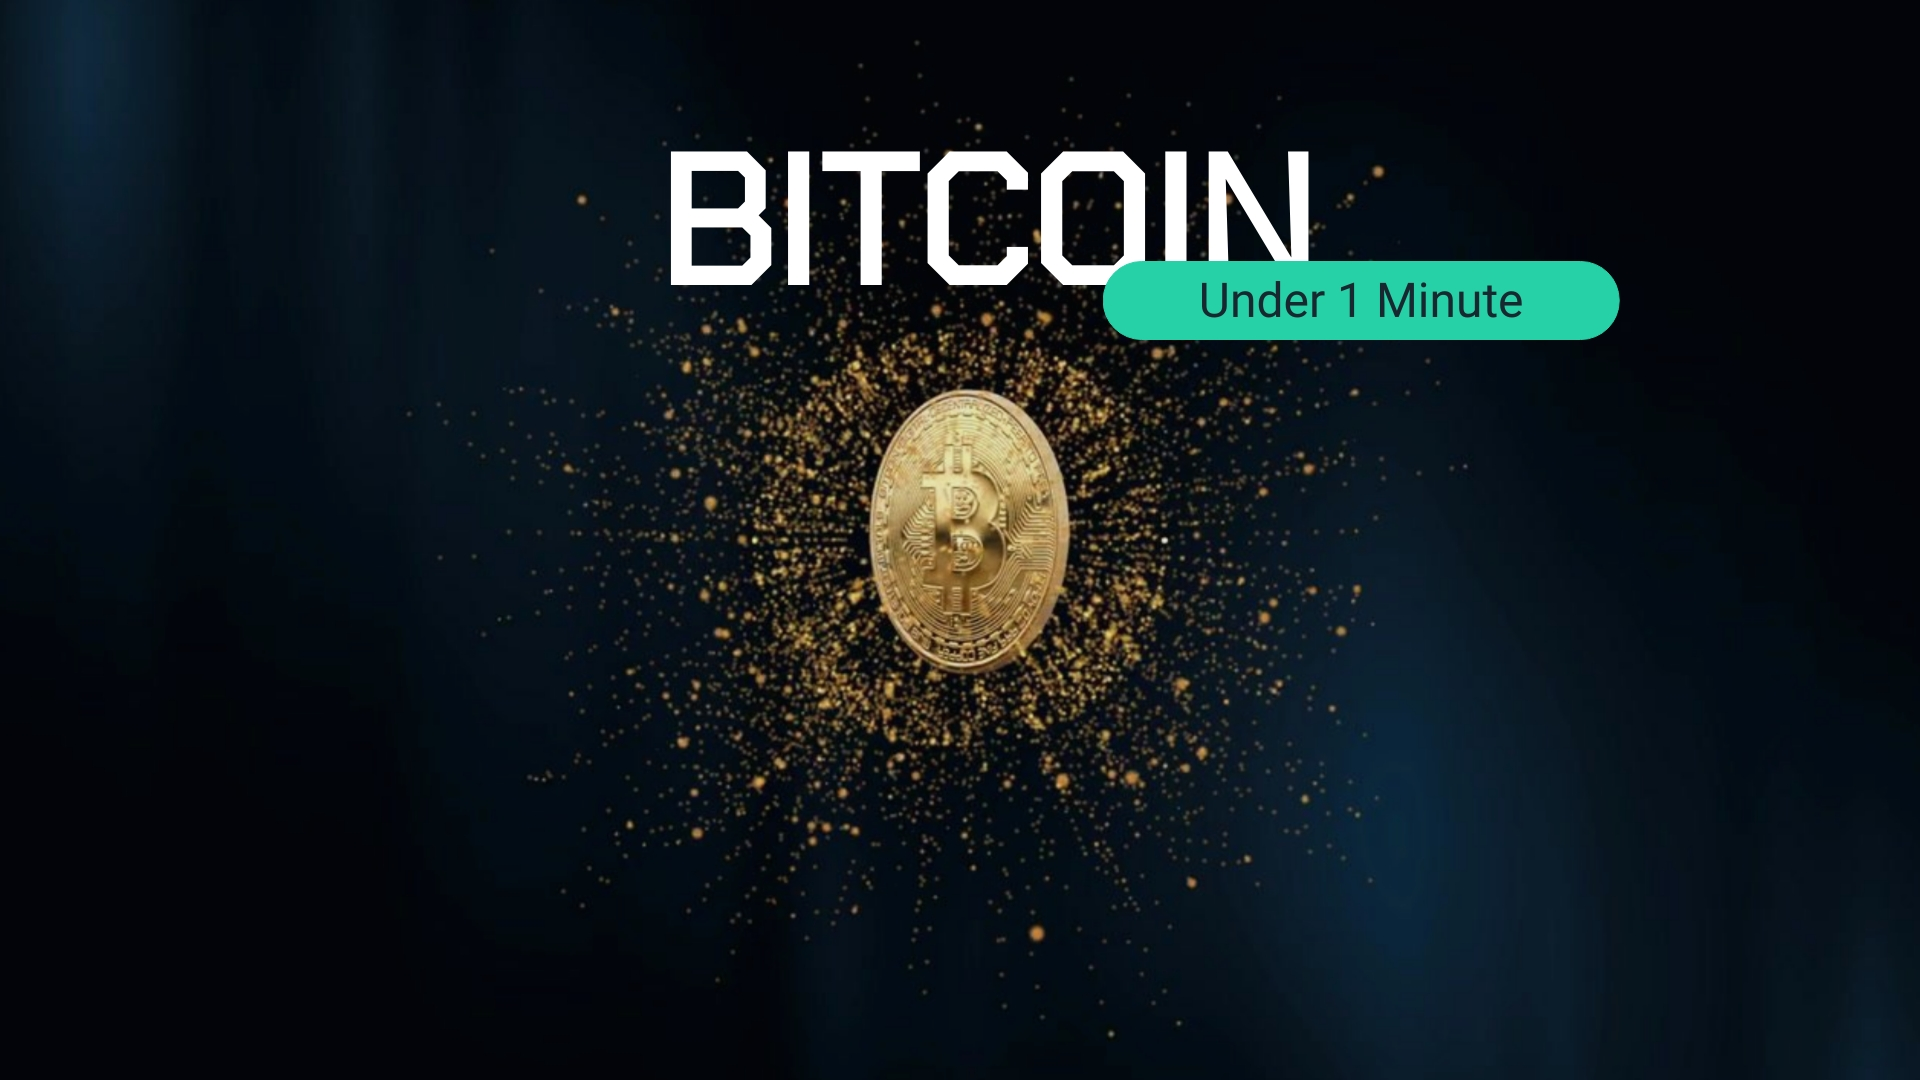 Bitcoin - Explainer Video Template